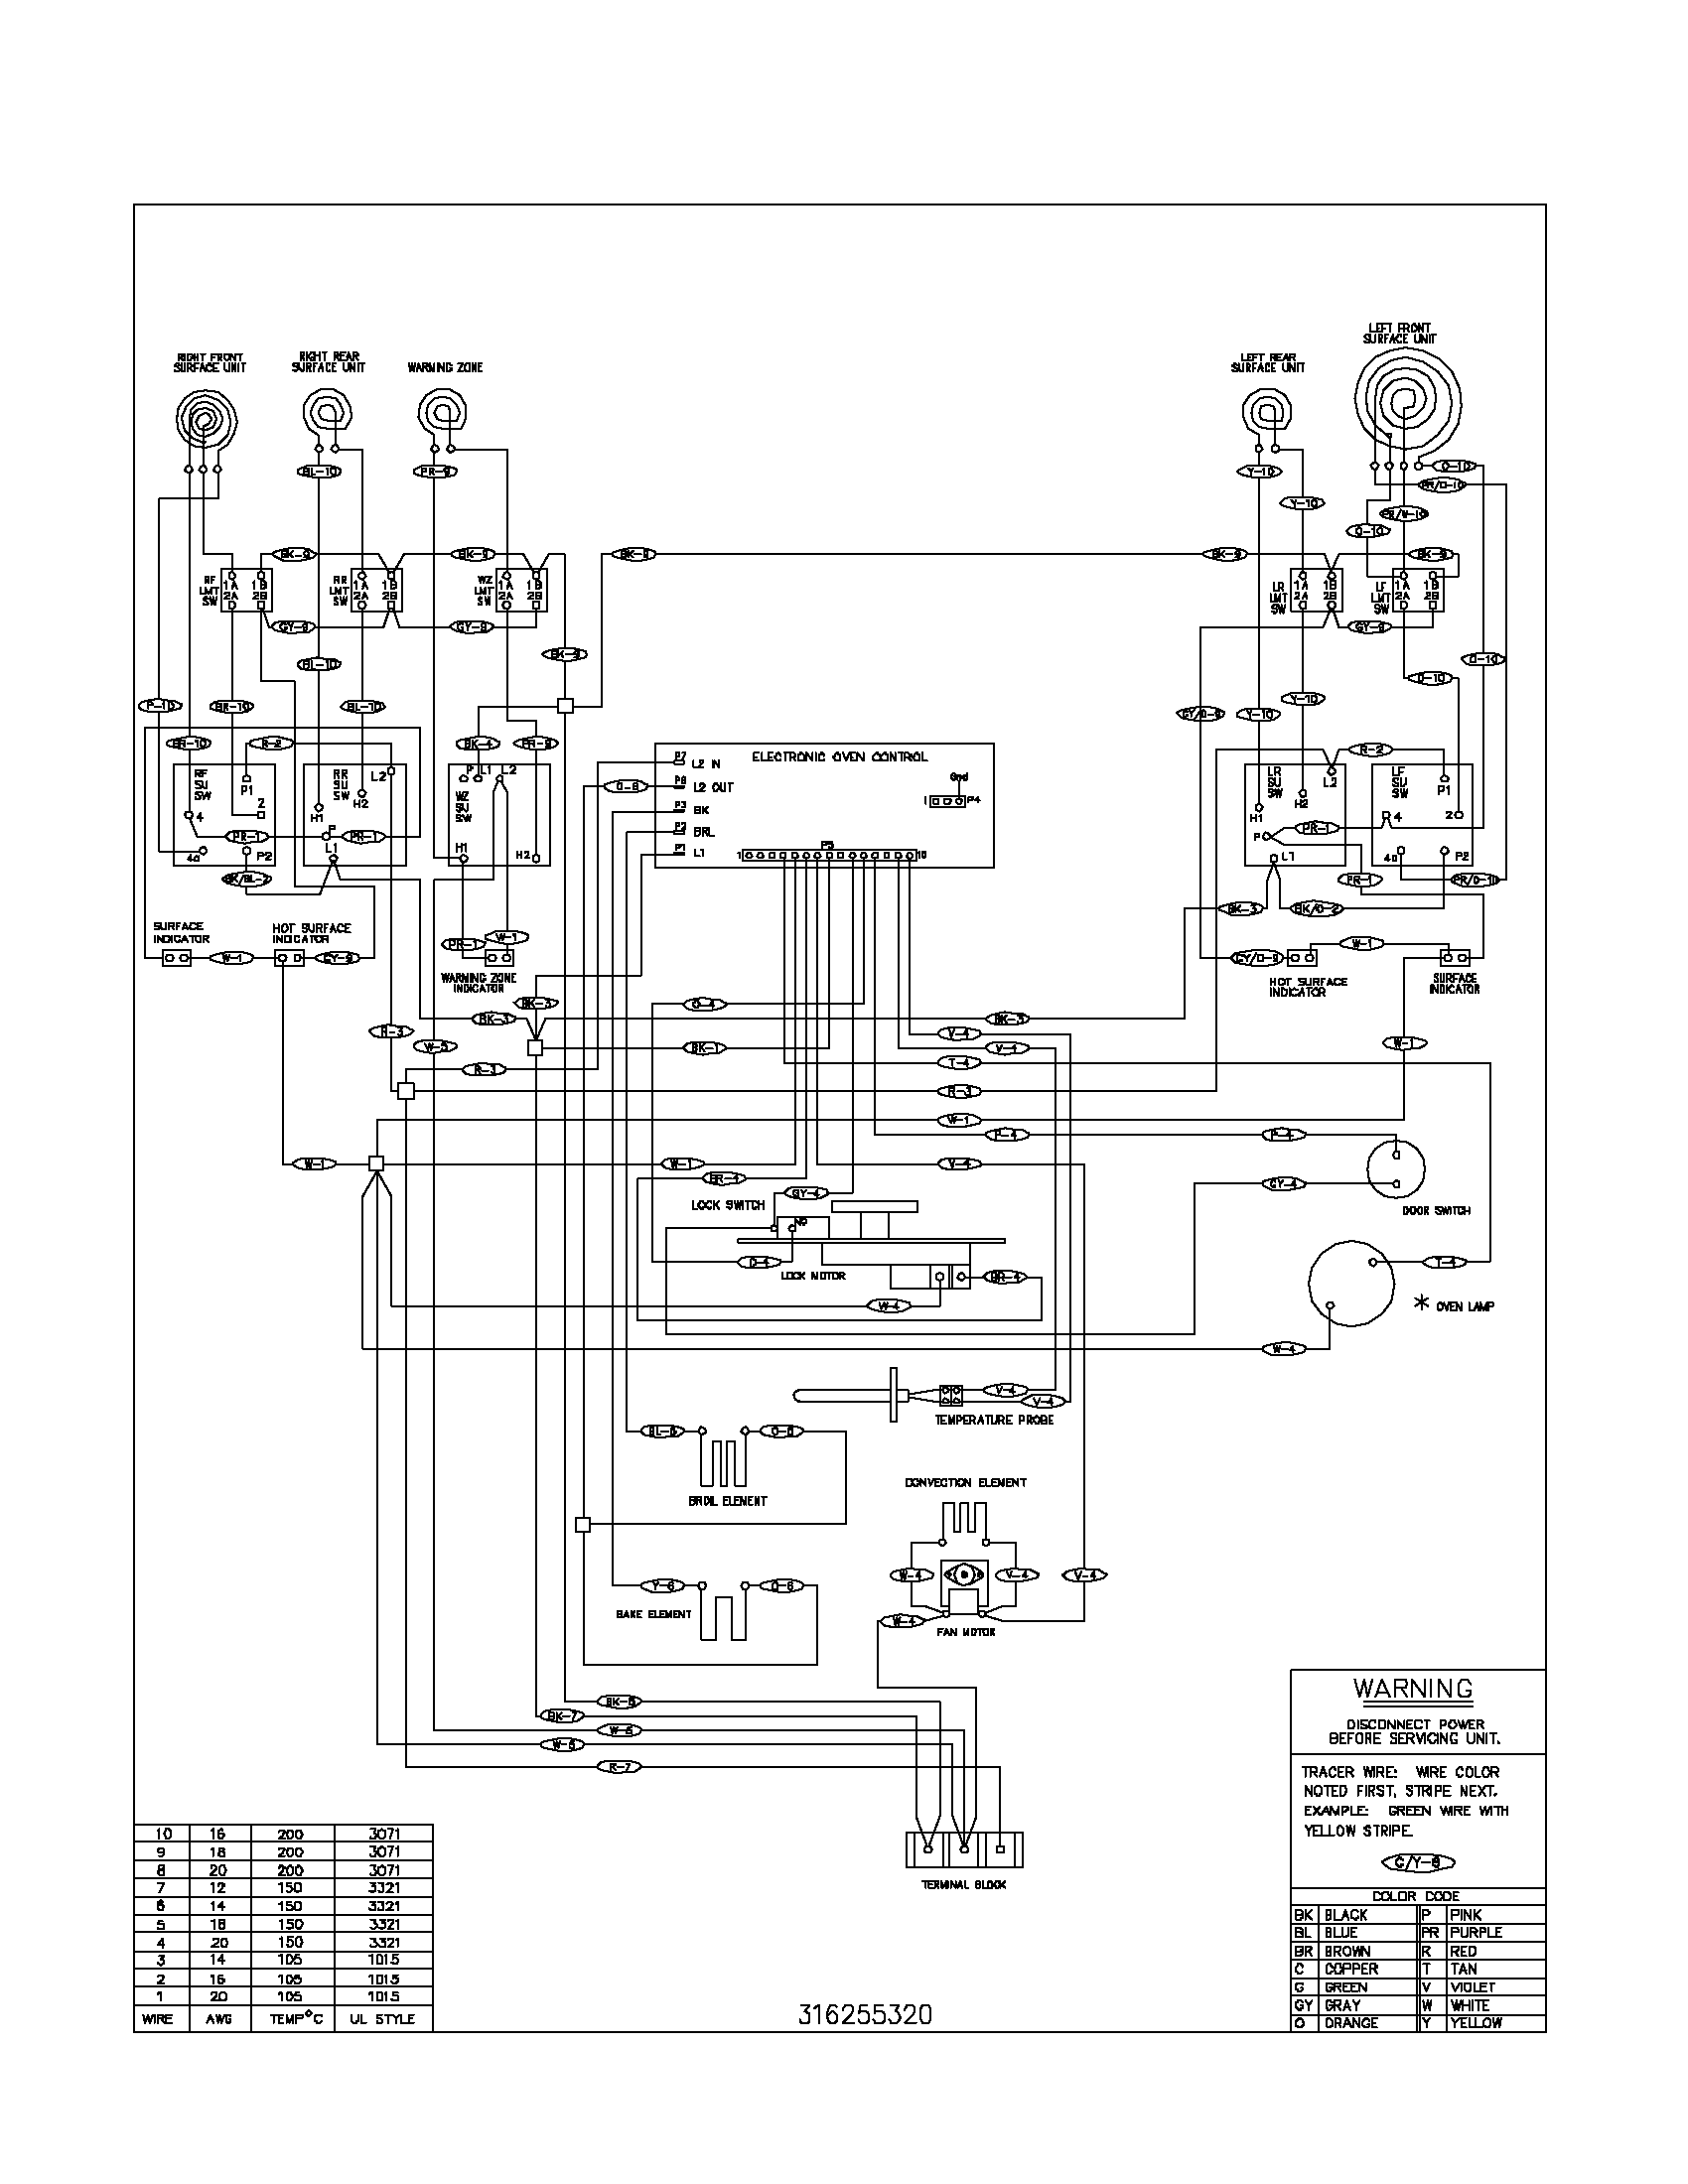 wiring diagram parts whirlpool fefl88acc electric range timer stove clocks and  at suagrazia.org